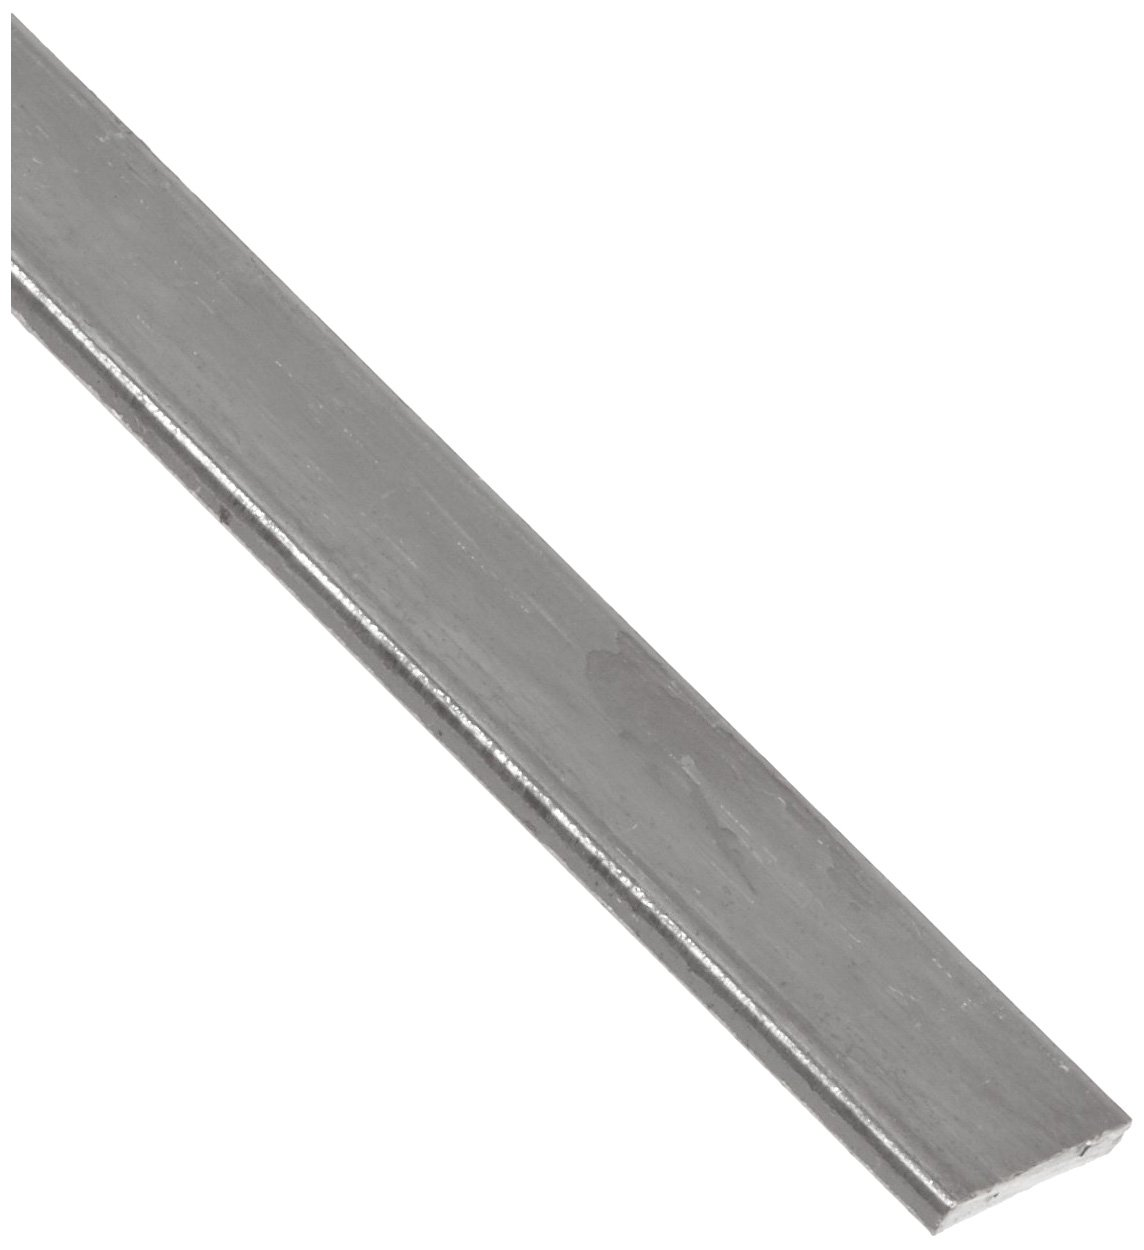 36 Length Finish ASTM A36 1-1//4 Width Unpolished 1//8 Thickness Mill A36 Steel Rectangular Bar